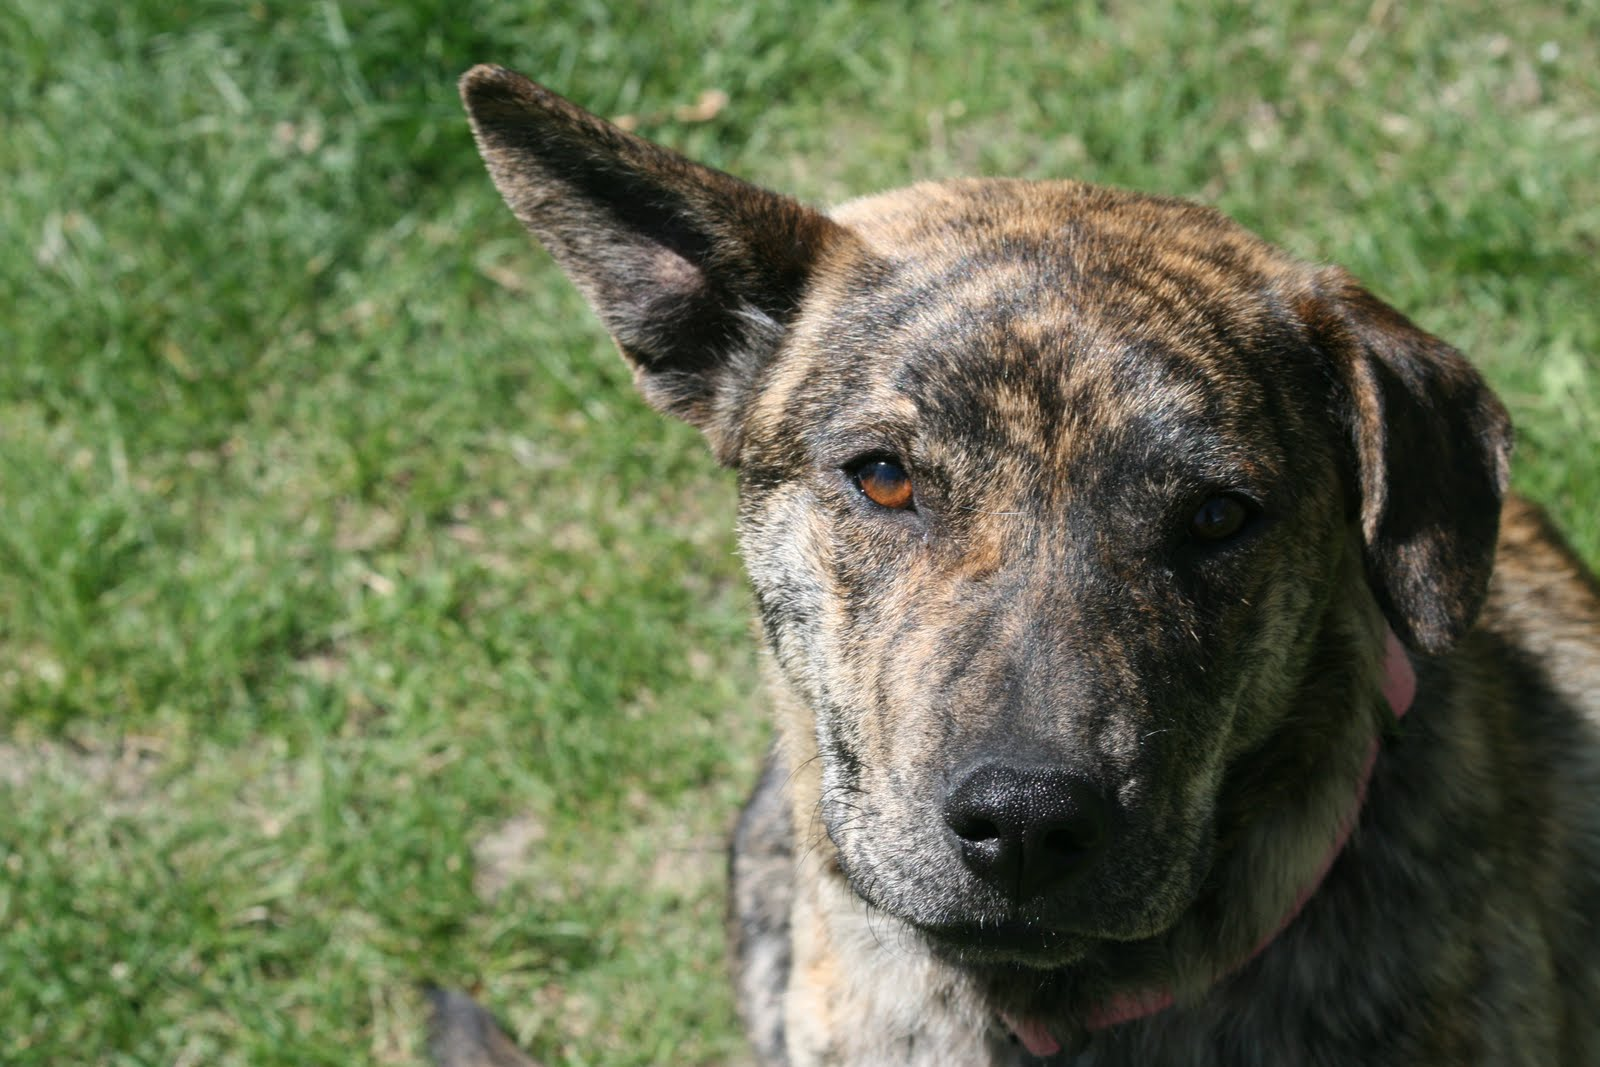 This is Tiger. She has the most amazing brindle coat I've ever seen.